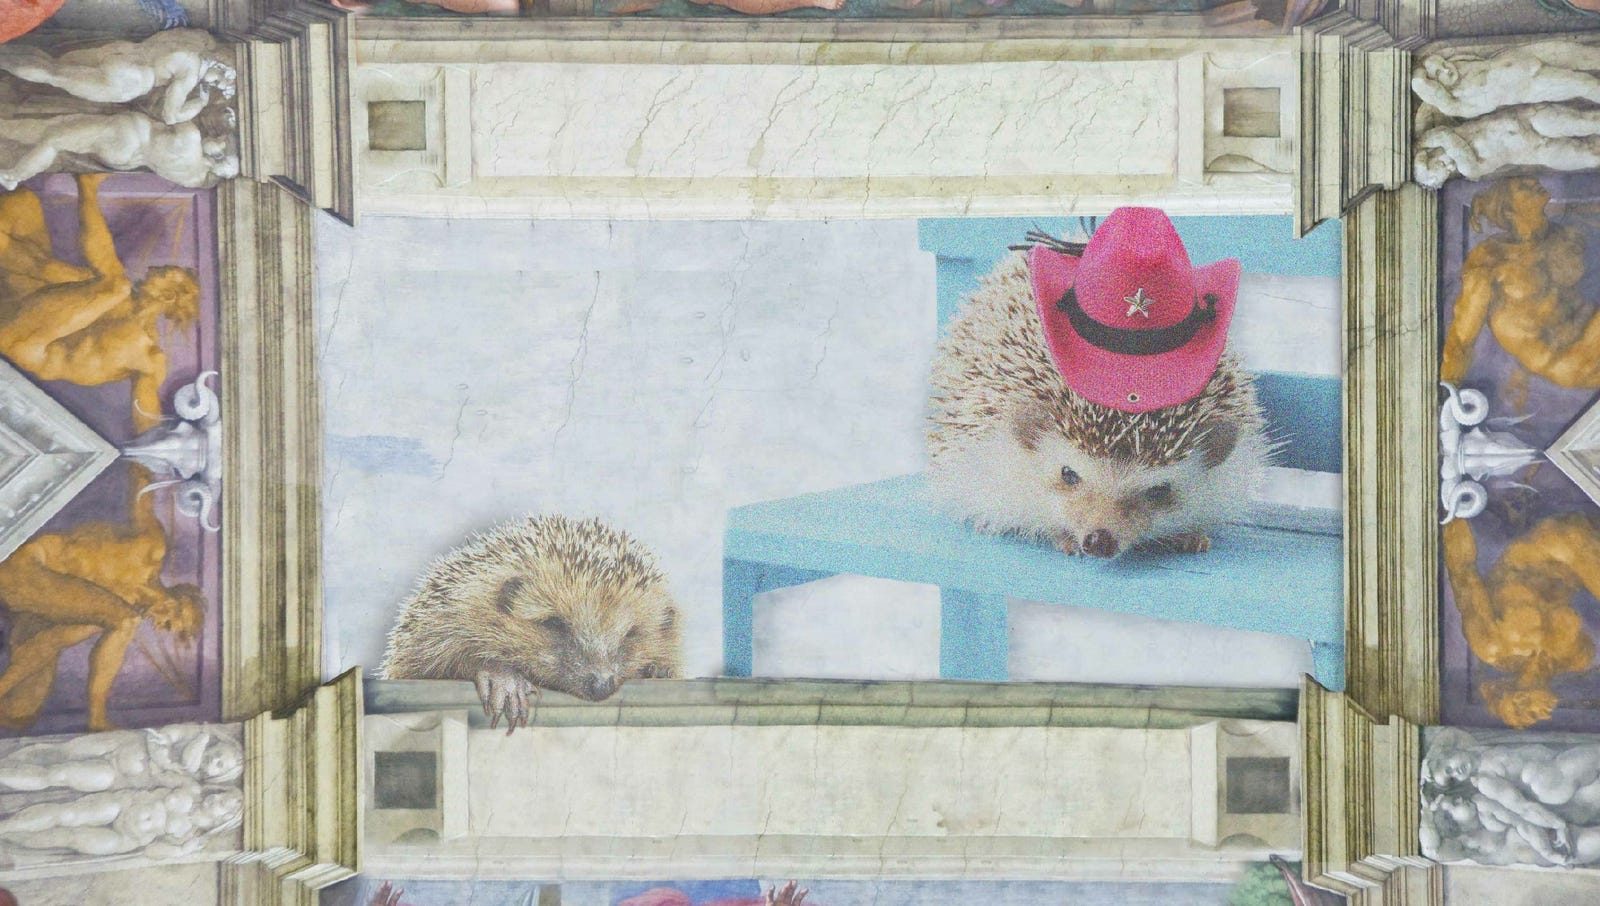 1508-1512: In what is considered one of the highlights of Renaissance slideshows, Michelangelo adorns the ceiling of the Sistine Chapel with detailed scenes of hedgehogs having a worse day than you.